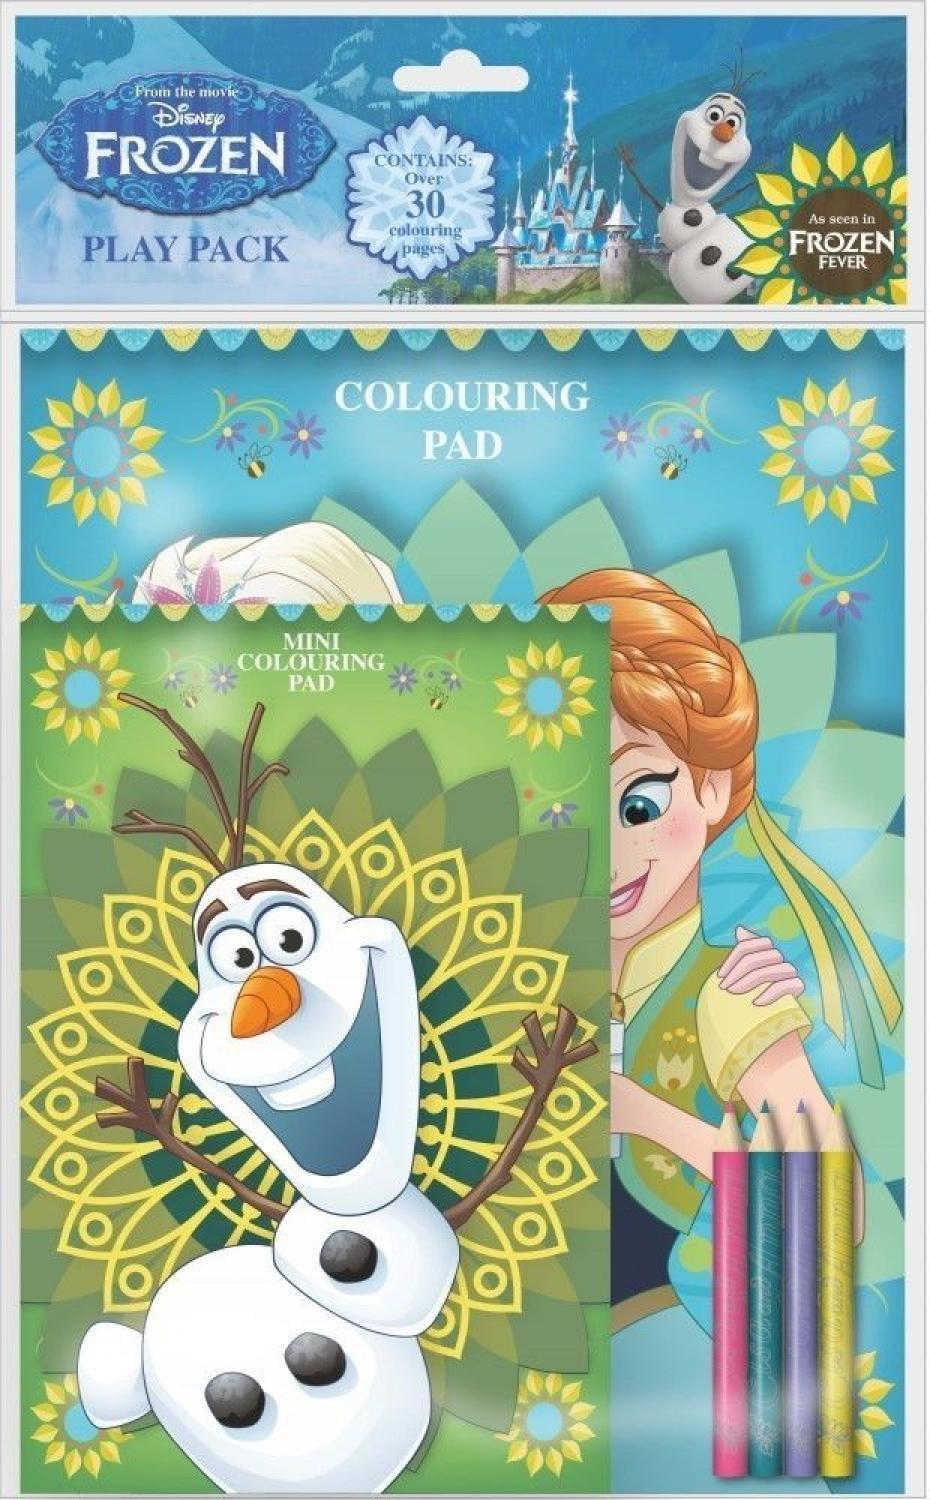 Play Pack - Frozen Fever